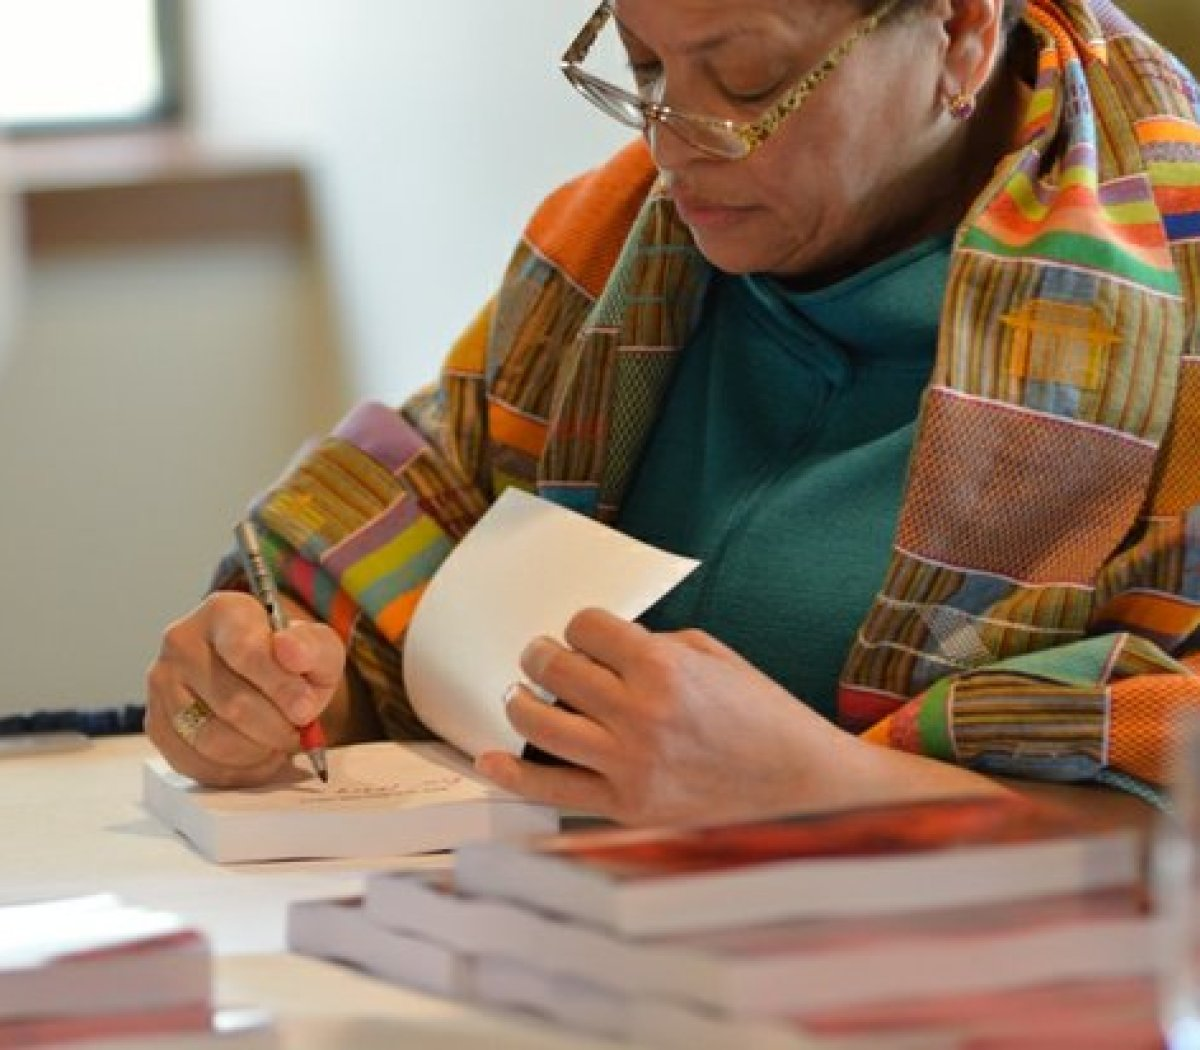 "Dr. Julianne Malveaux signs copies of her latest book ""Are We Better Off? Race, Obama and Public Policy"", at the Sixth Annual Stateswomen for Justice Luncheon at the National Press Club, Thursday, March 31, 2016 in Northwest. /Photo by Patricia Little @5feet2"